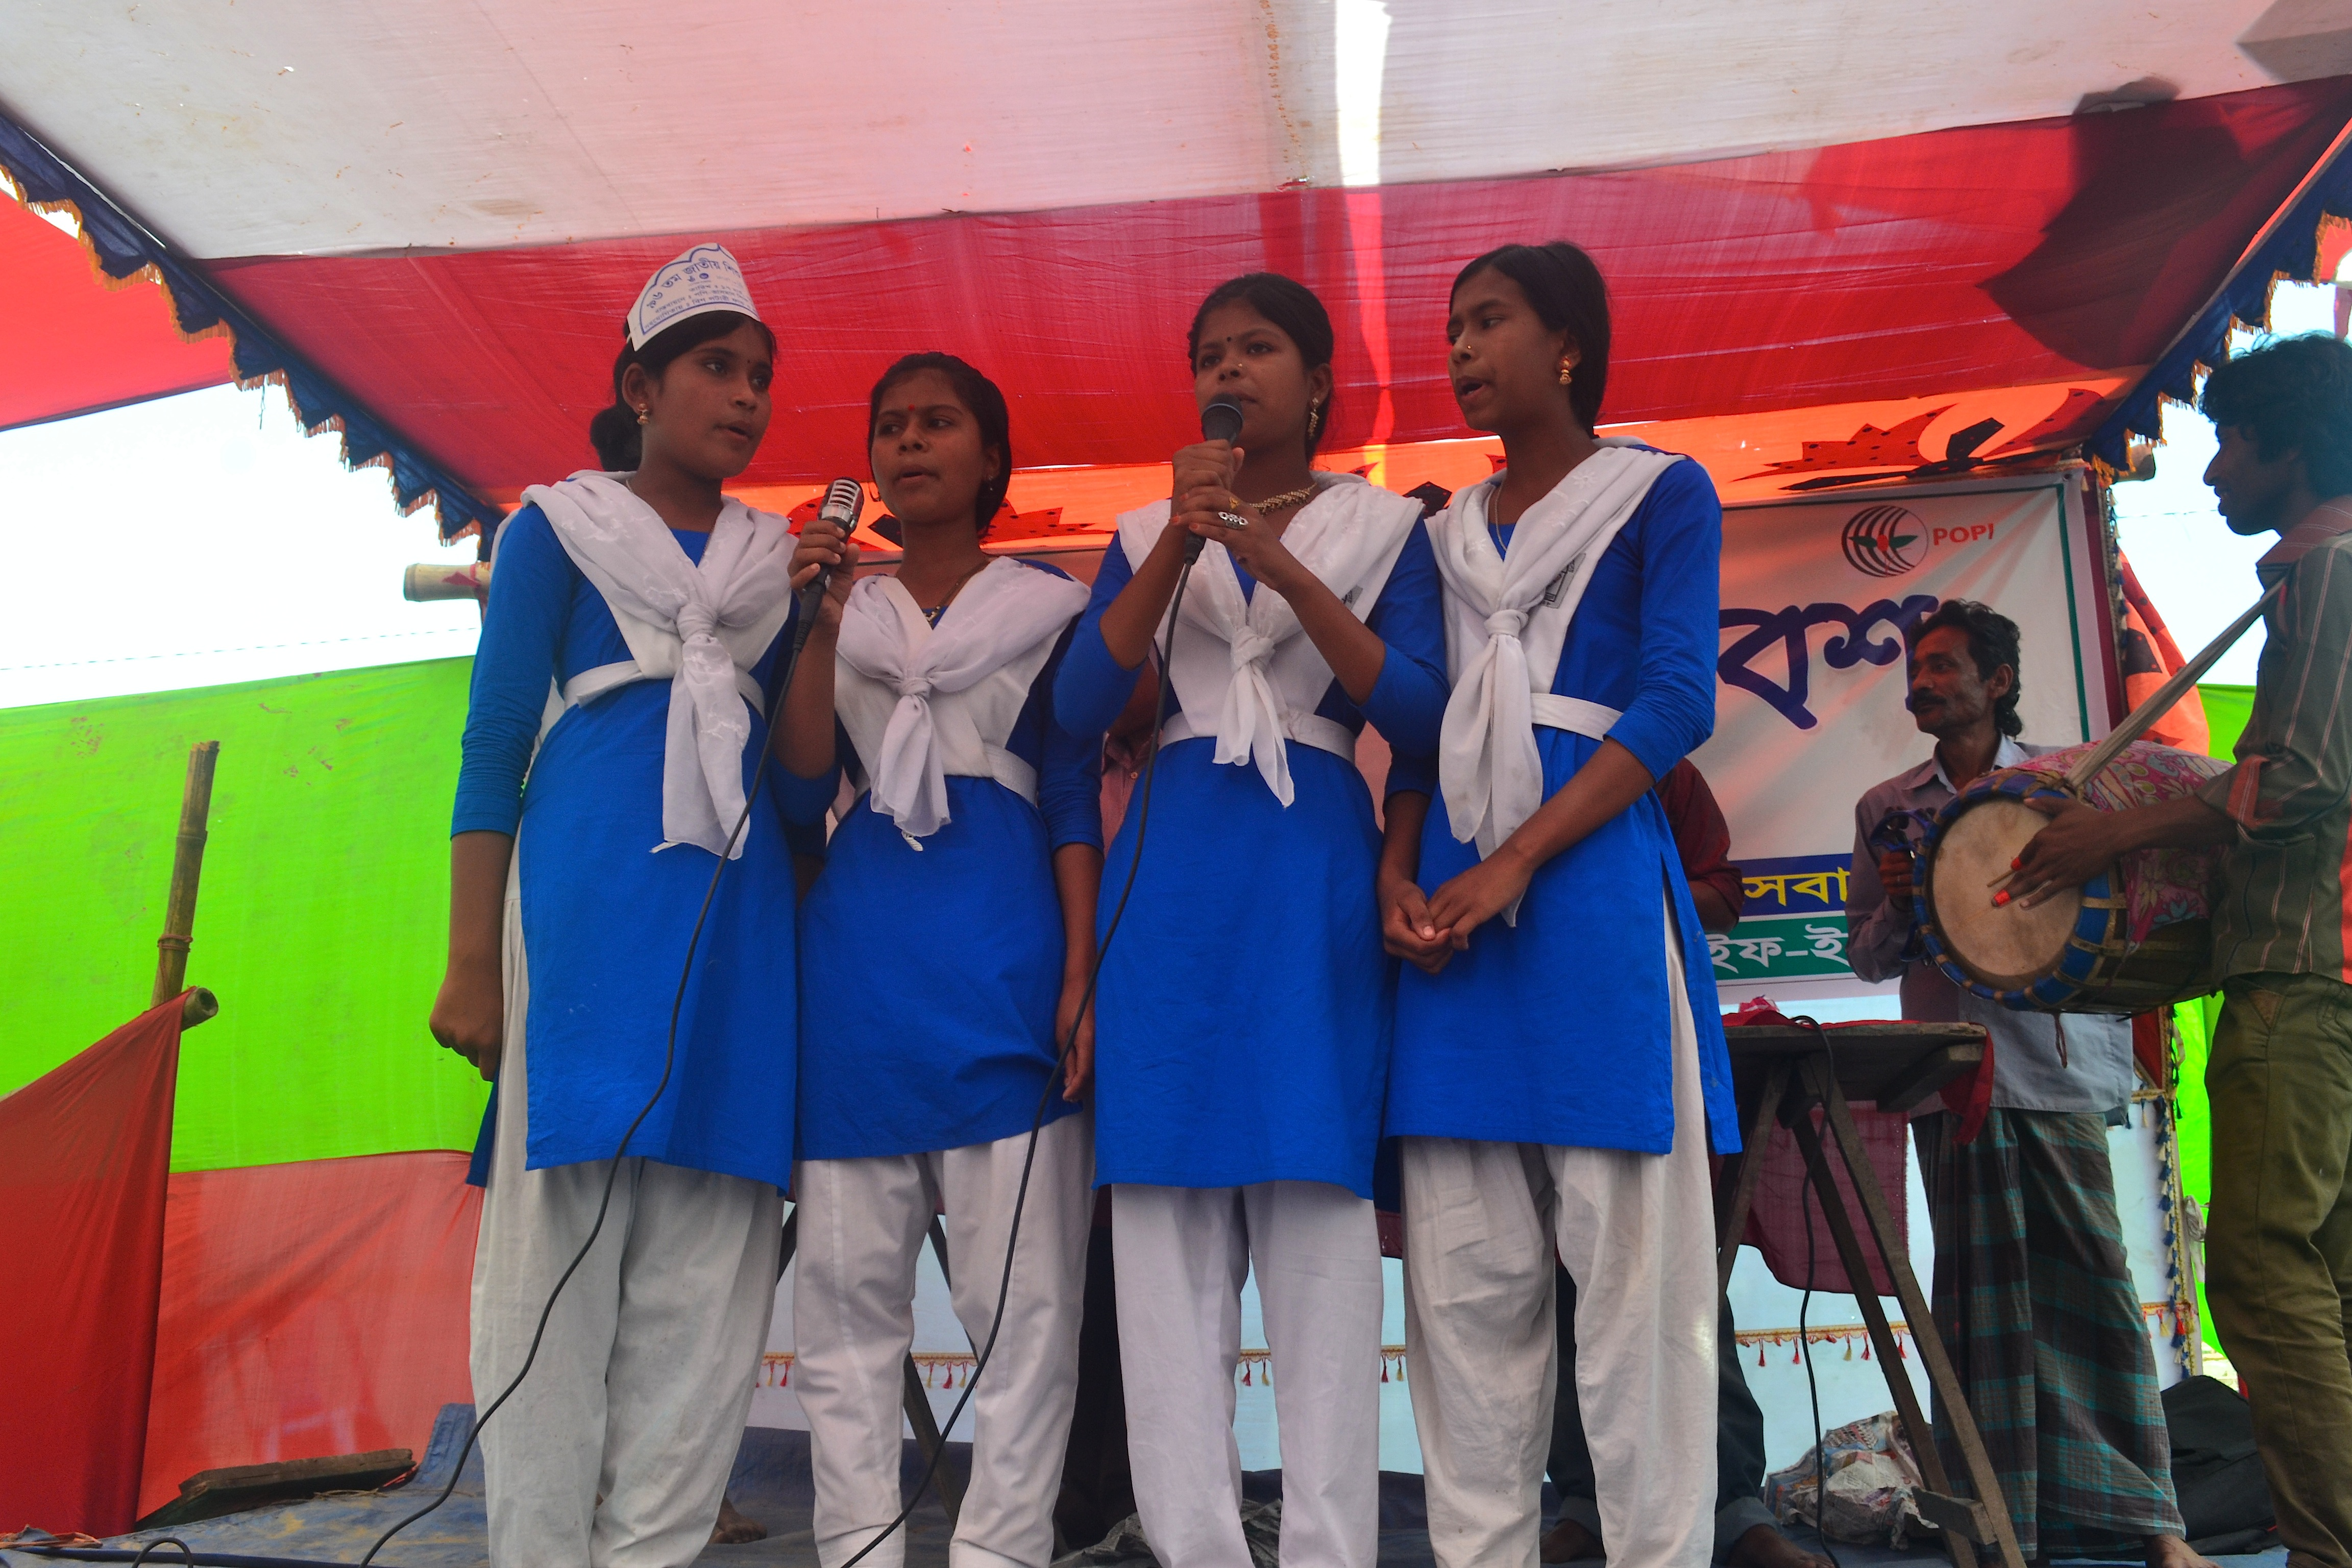 Children Performing at the meet